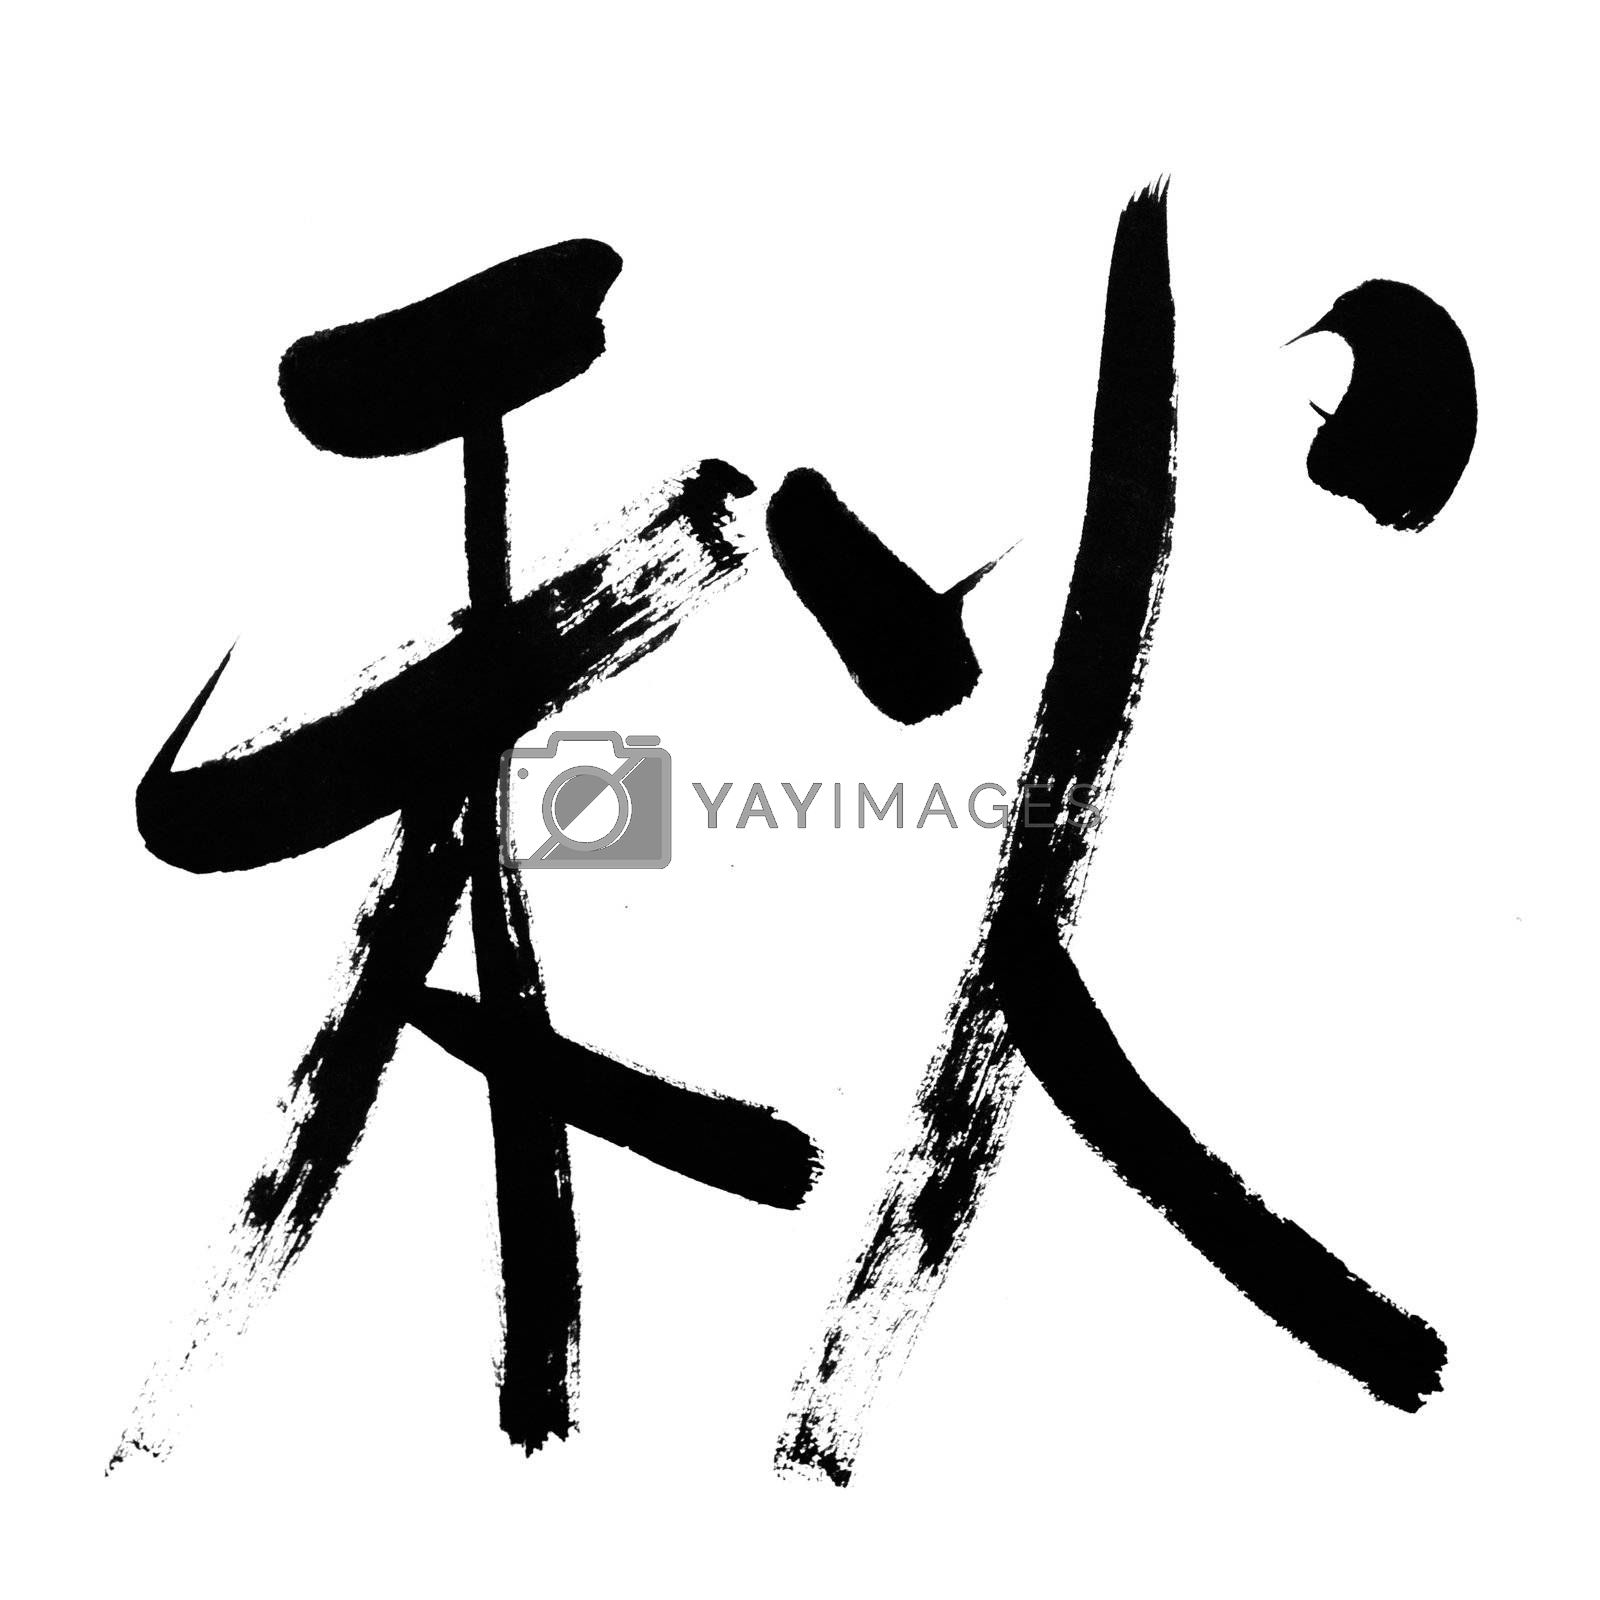 Fall, traditional chinese calligraphy art isolated on white background.